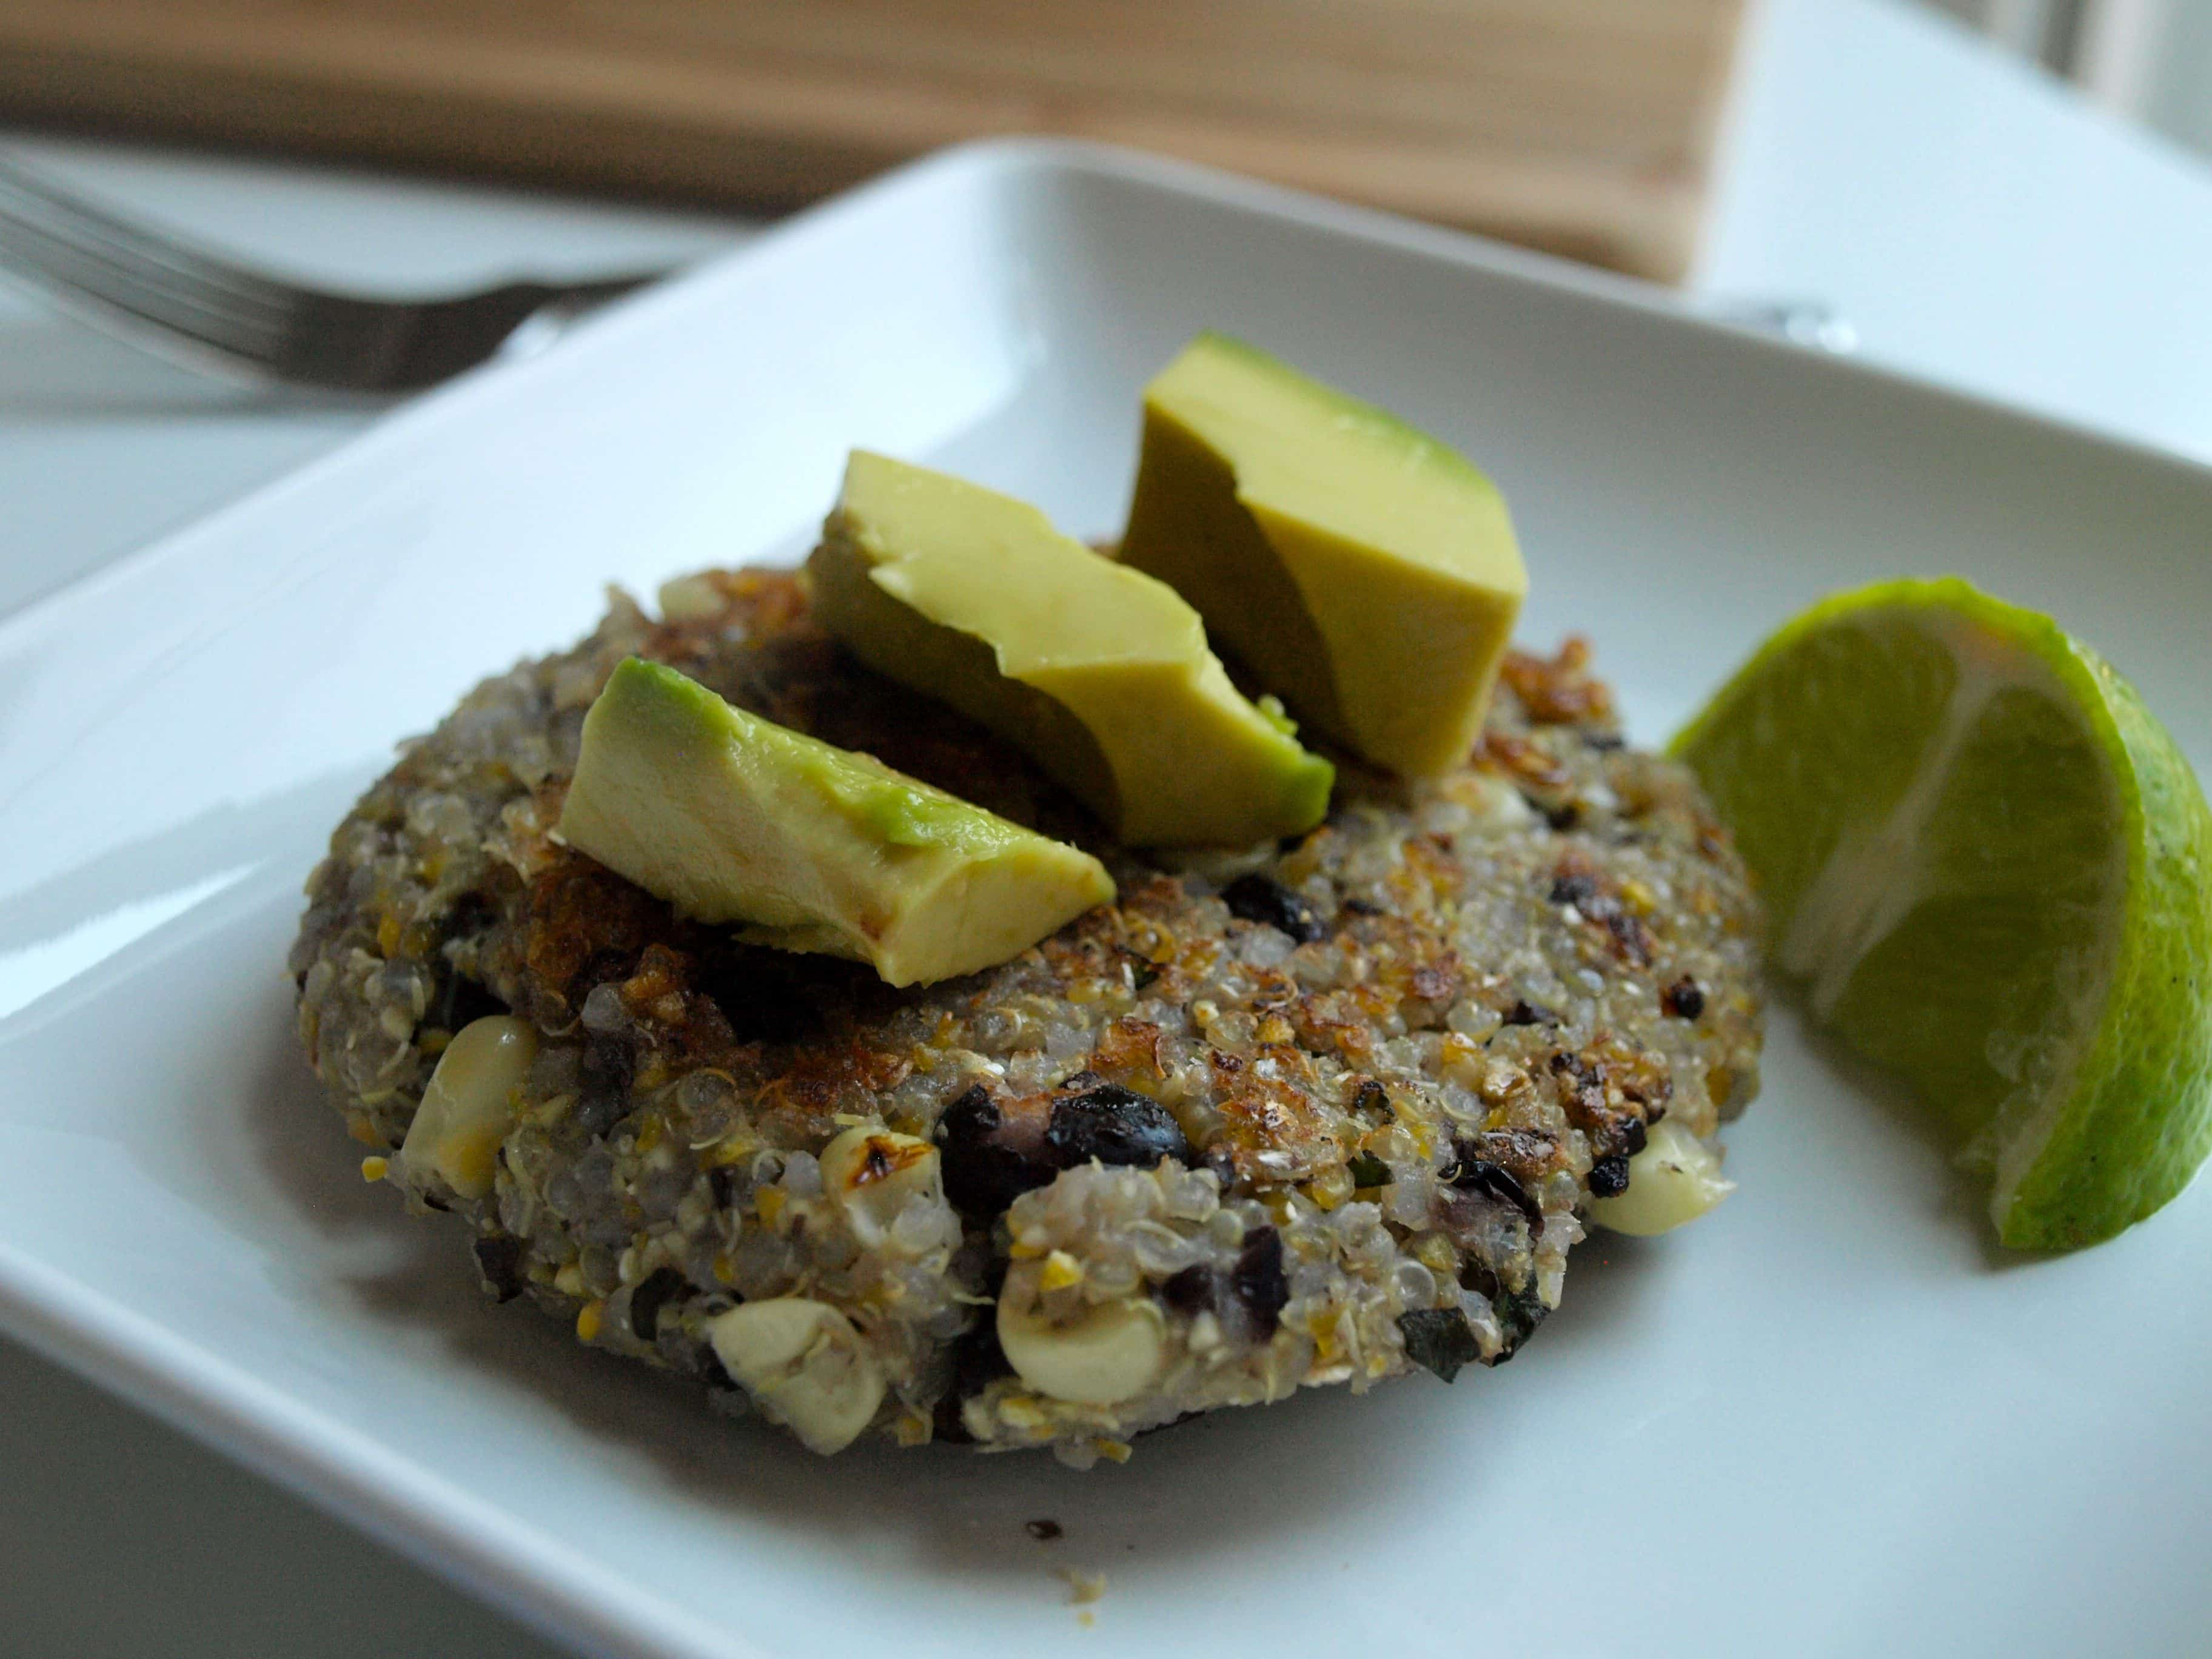 Quinoa patties with black beans and corn